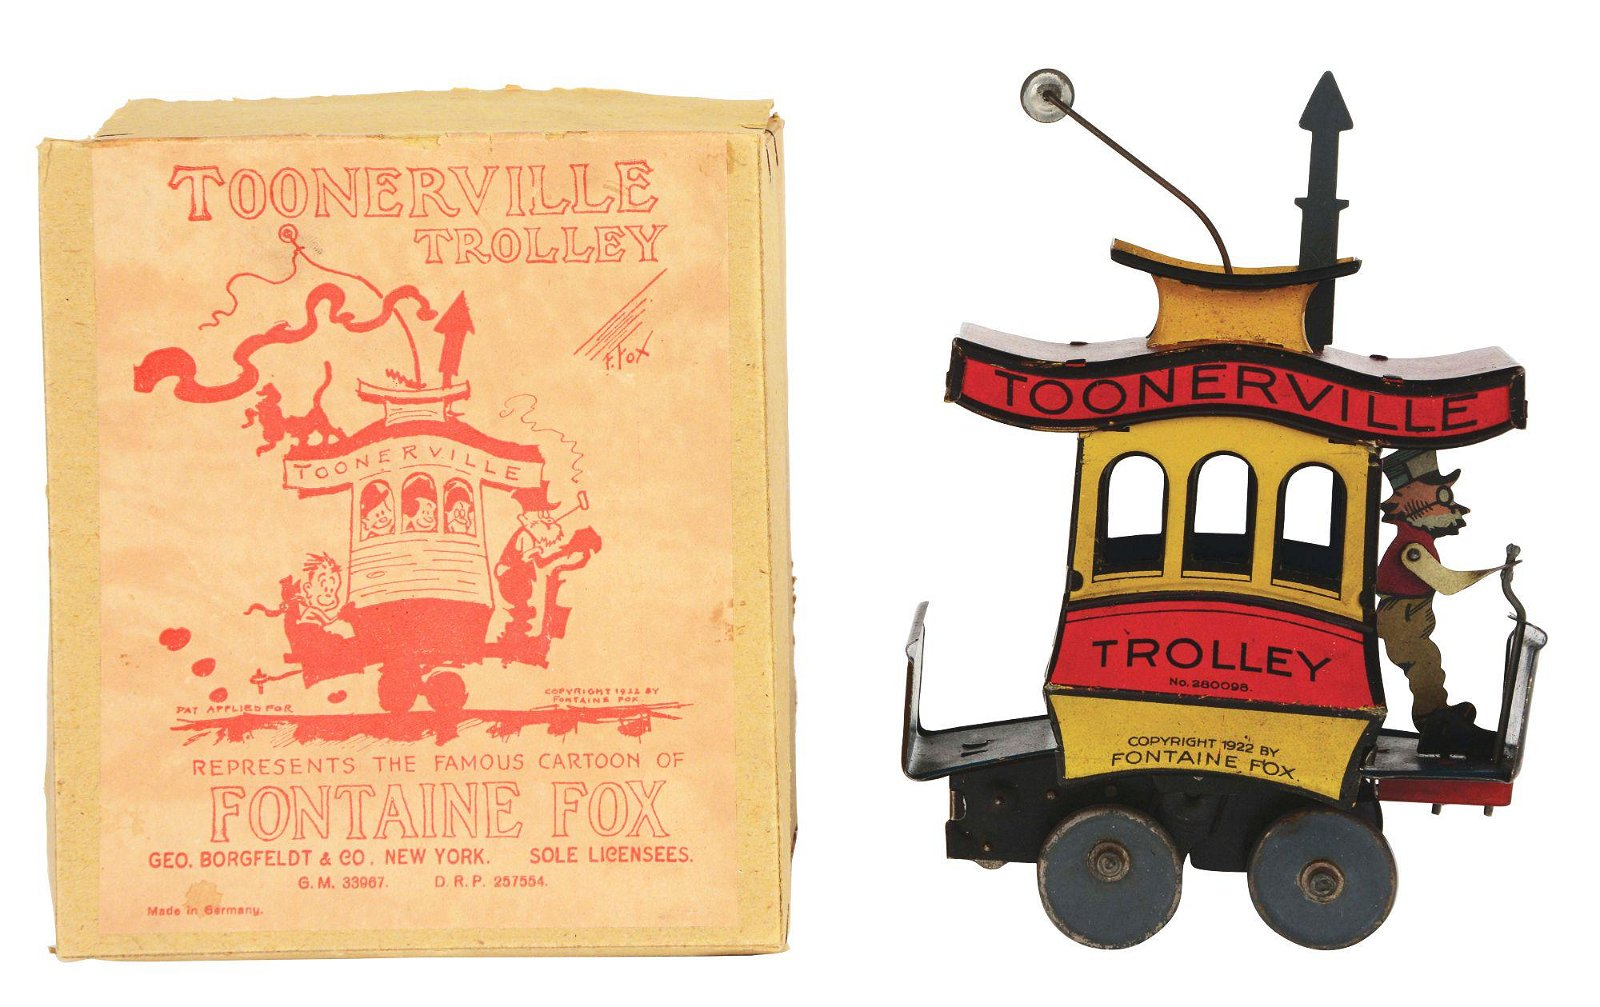 GERMAN NIFTY TIN-LITHO WIND-UP TOONERVILLE TROLLEY WITH